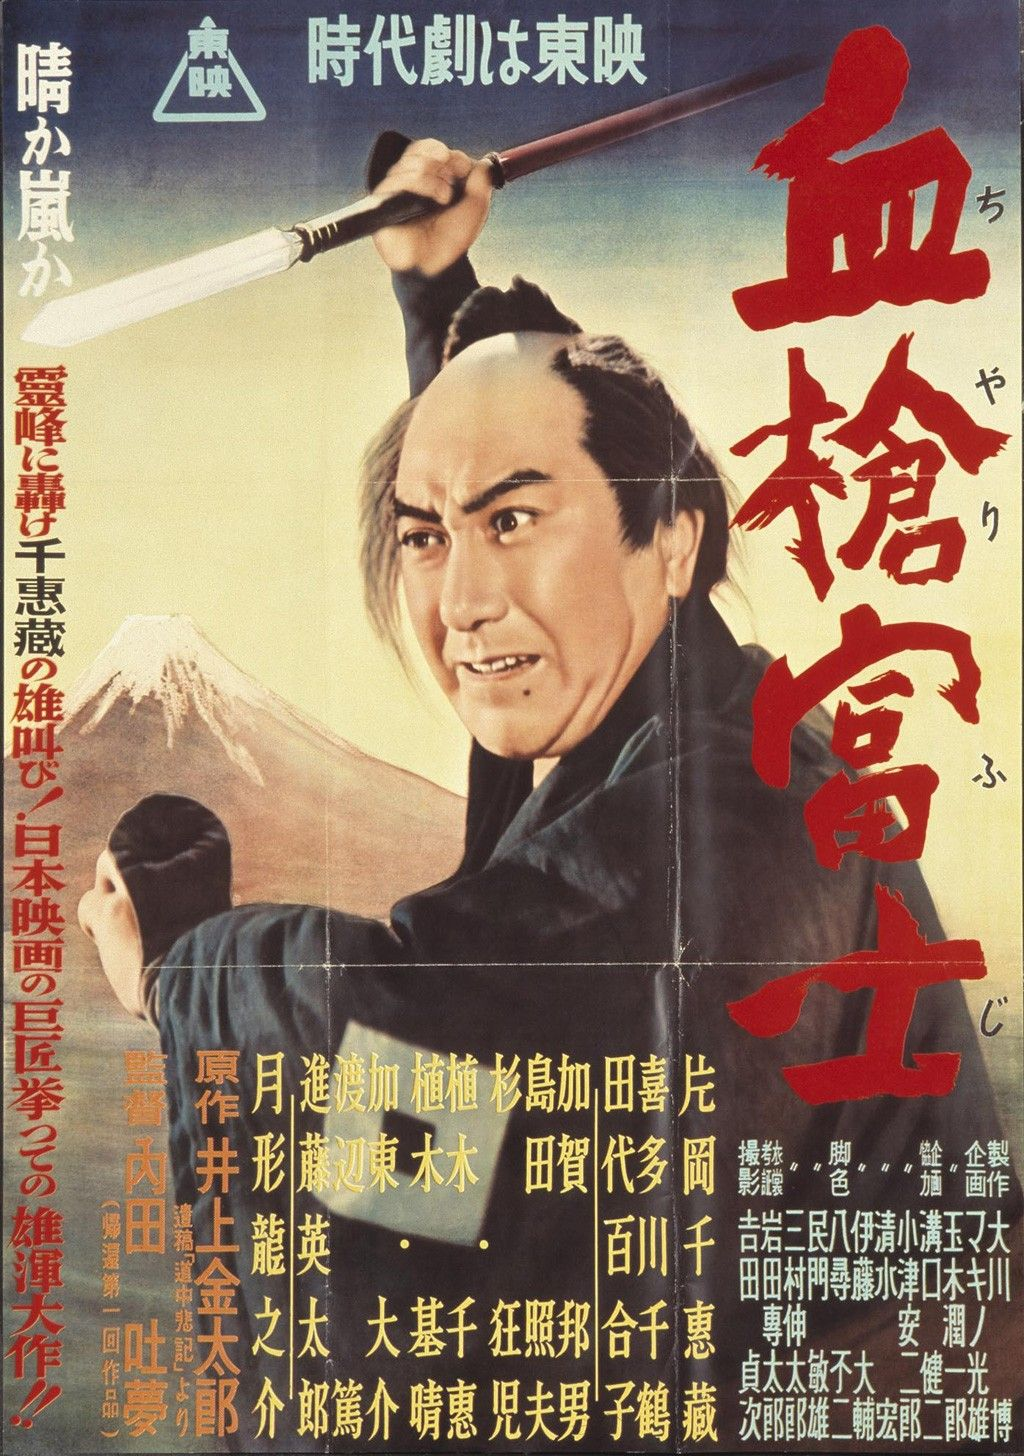 Bloody Spear Mount Fuji poster